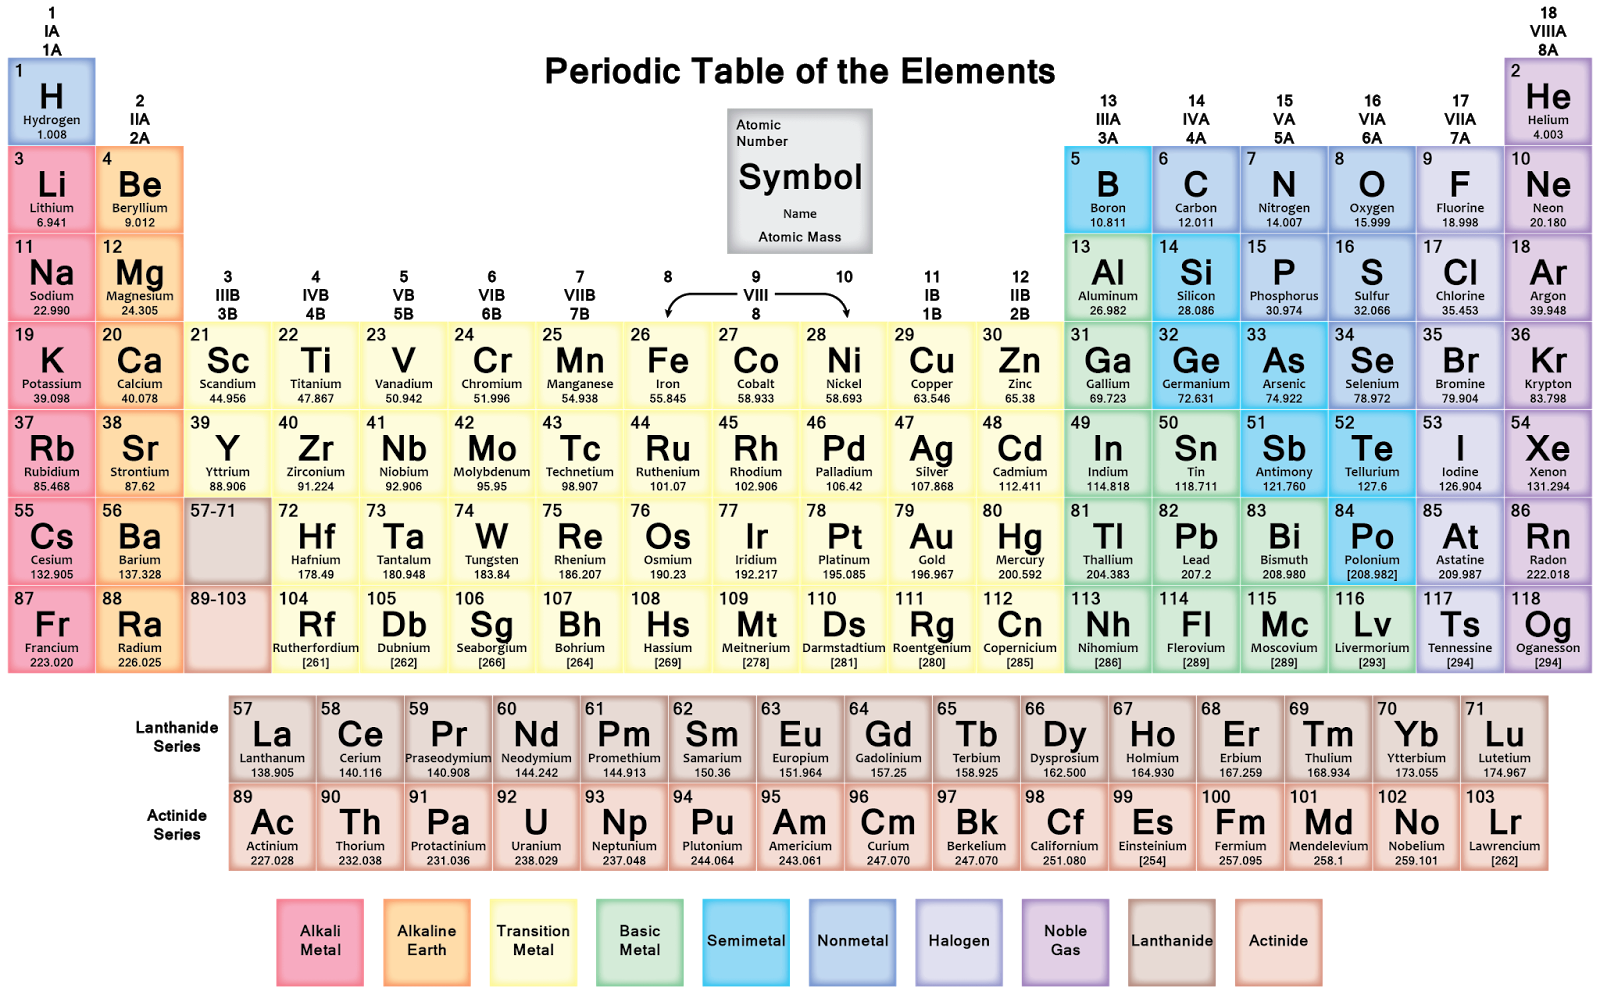 Blaines puzzle blog npr sunday puzzle oct 29 2017 metal name a well known nationality drop a letter and the remaining letters in order will name a metal one of the elements on the periodic table gamestrikefo Choice Image